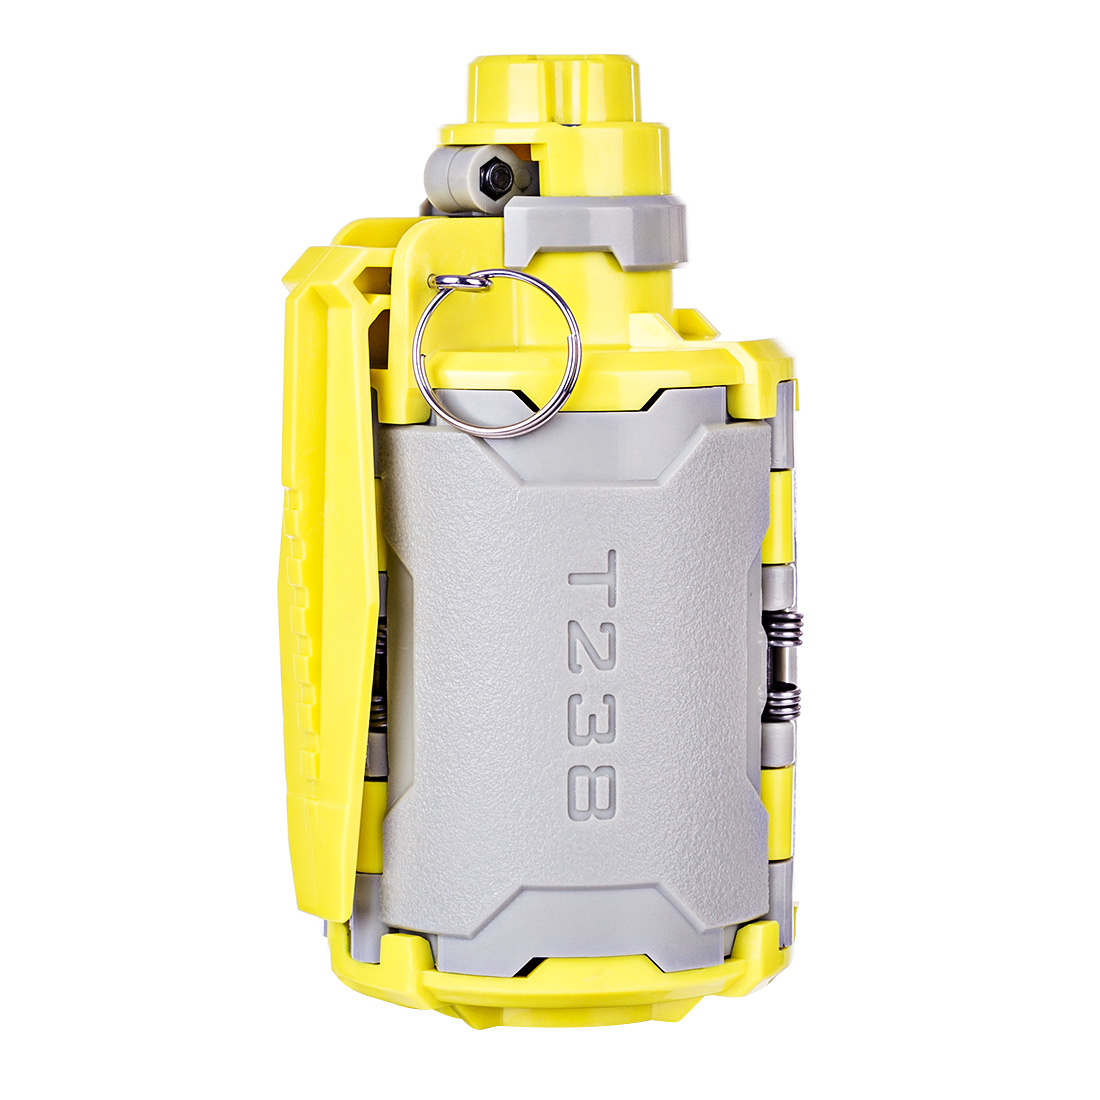 T238 V2 Large Capacity Bomb Toy with Time-delayed Function for Games Gel <font><b>Ball</b></font> <font><b>BBs</b></font> For Airsoft Wargame - Grey + Yellow image